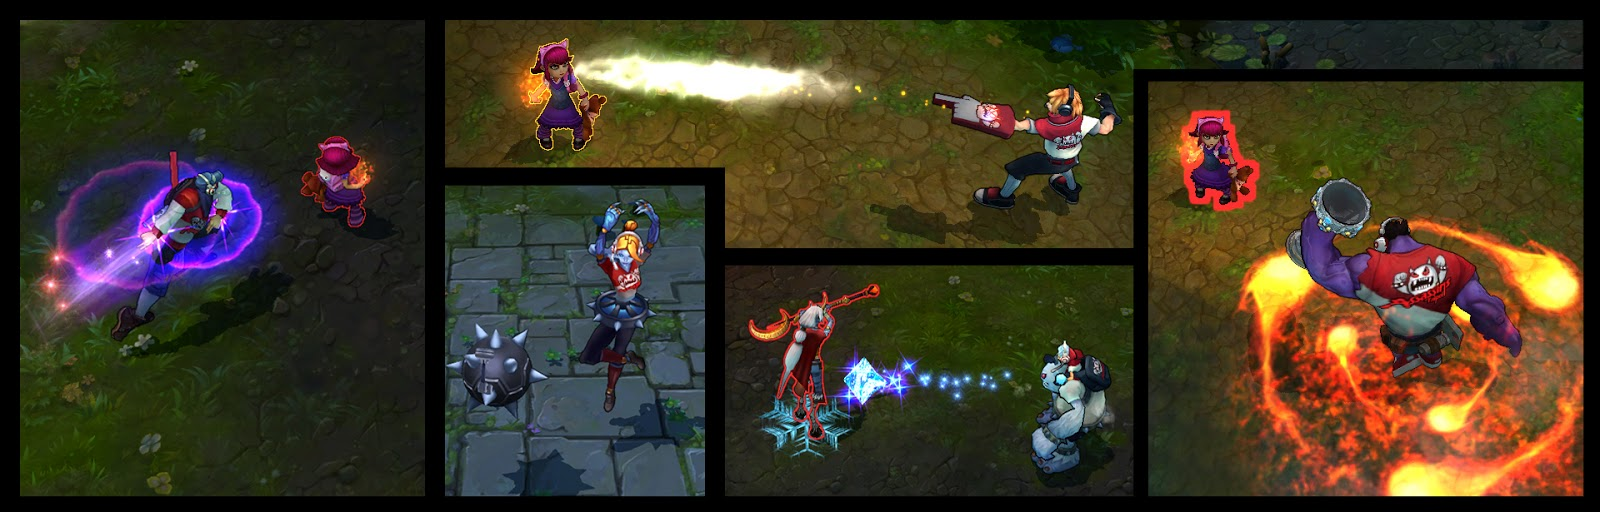 Surrender At 20 Tpa Skins Now Available